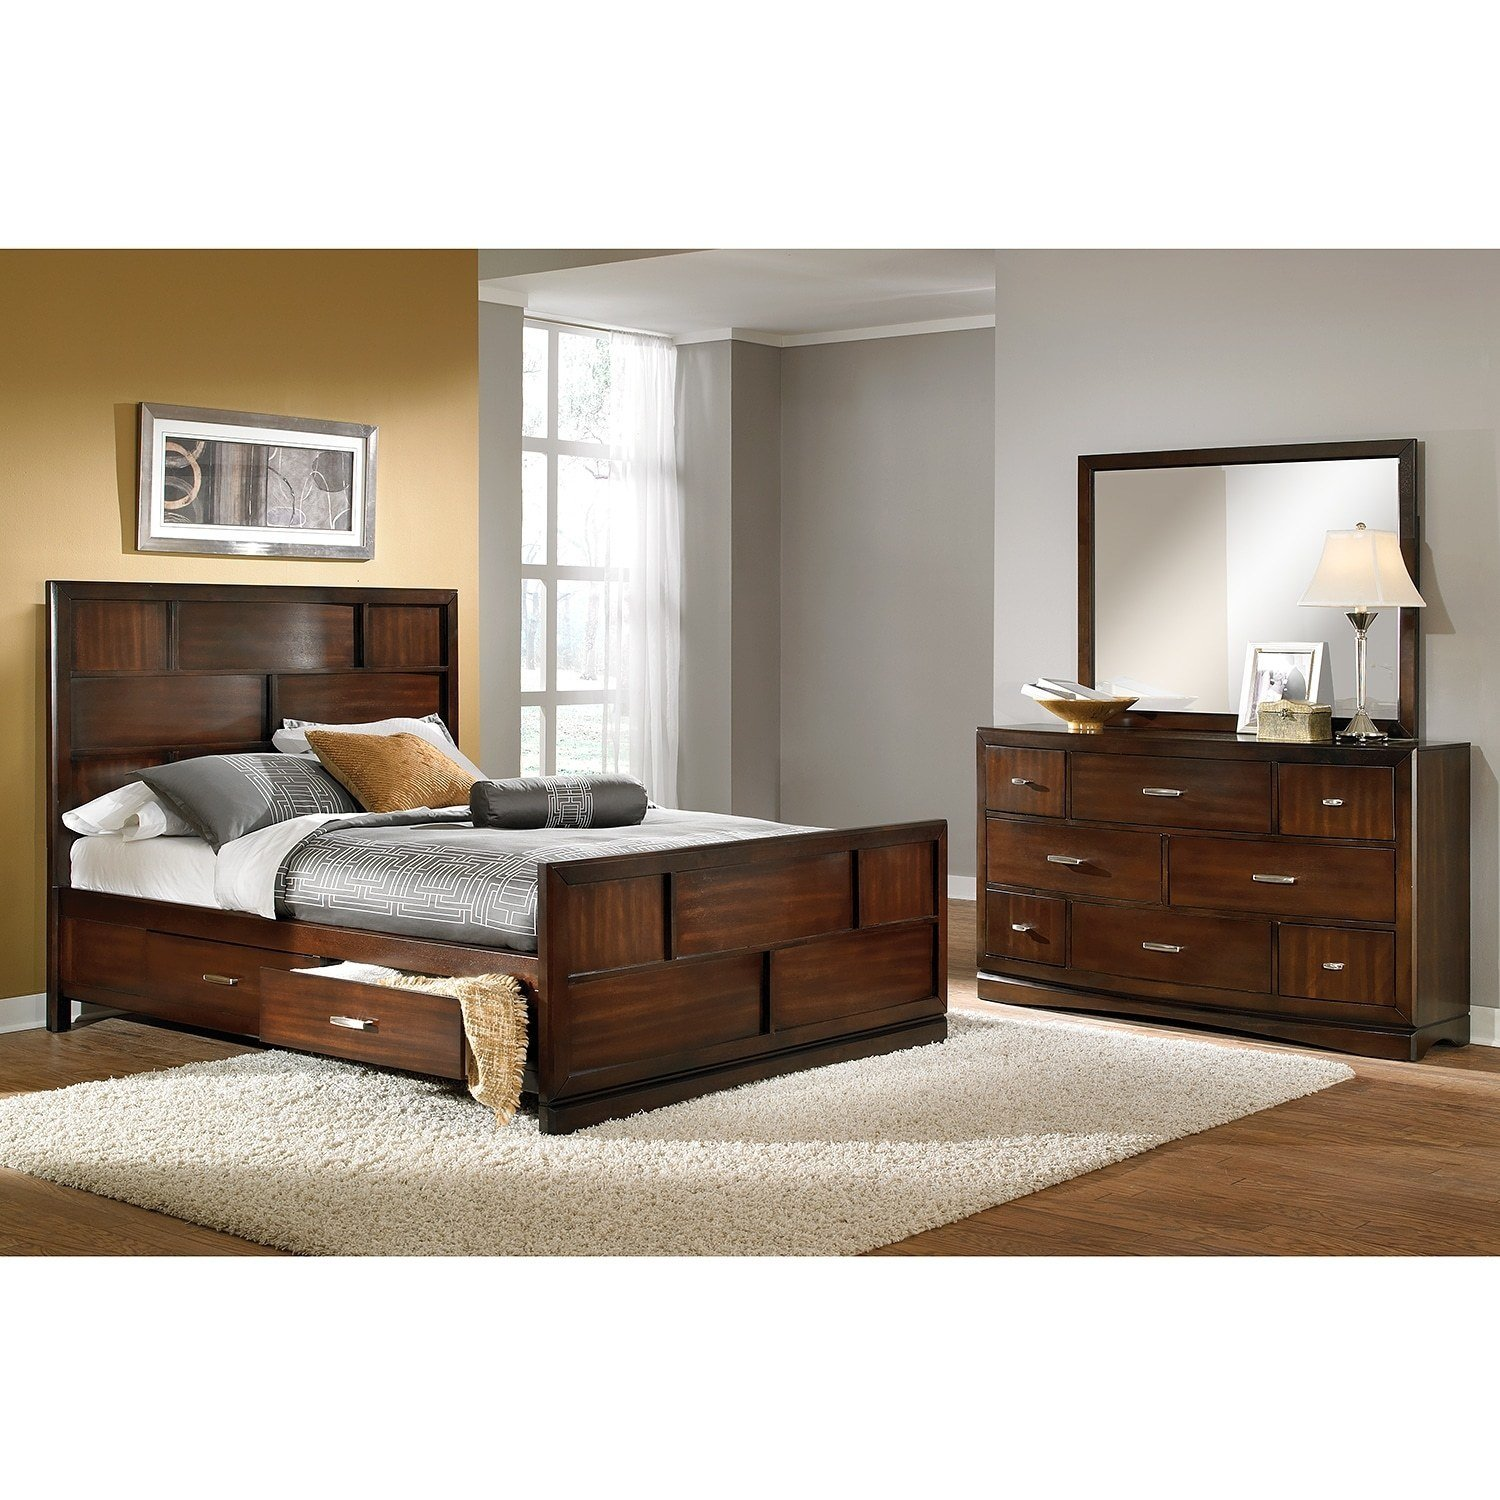 Best Shop Bedroom Packages Value City Furniture With Pictures